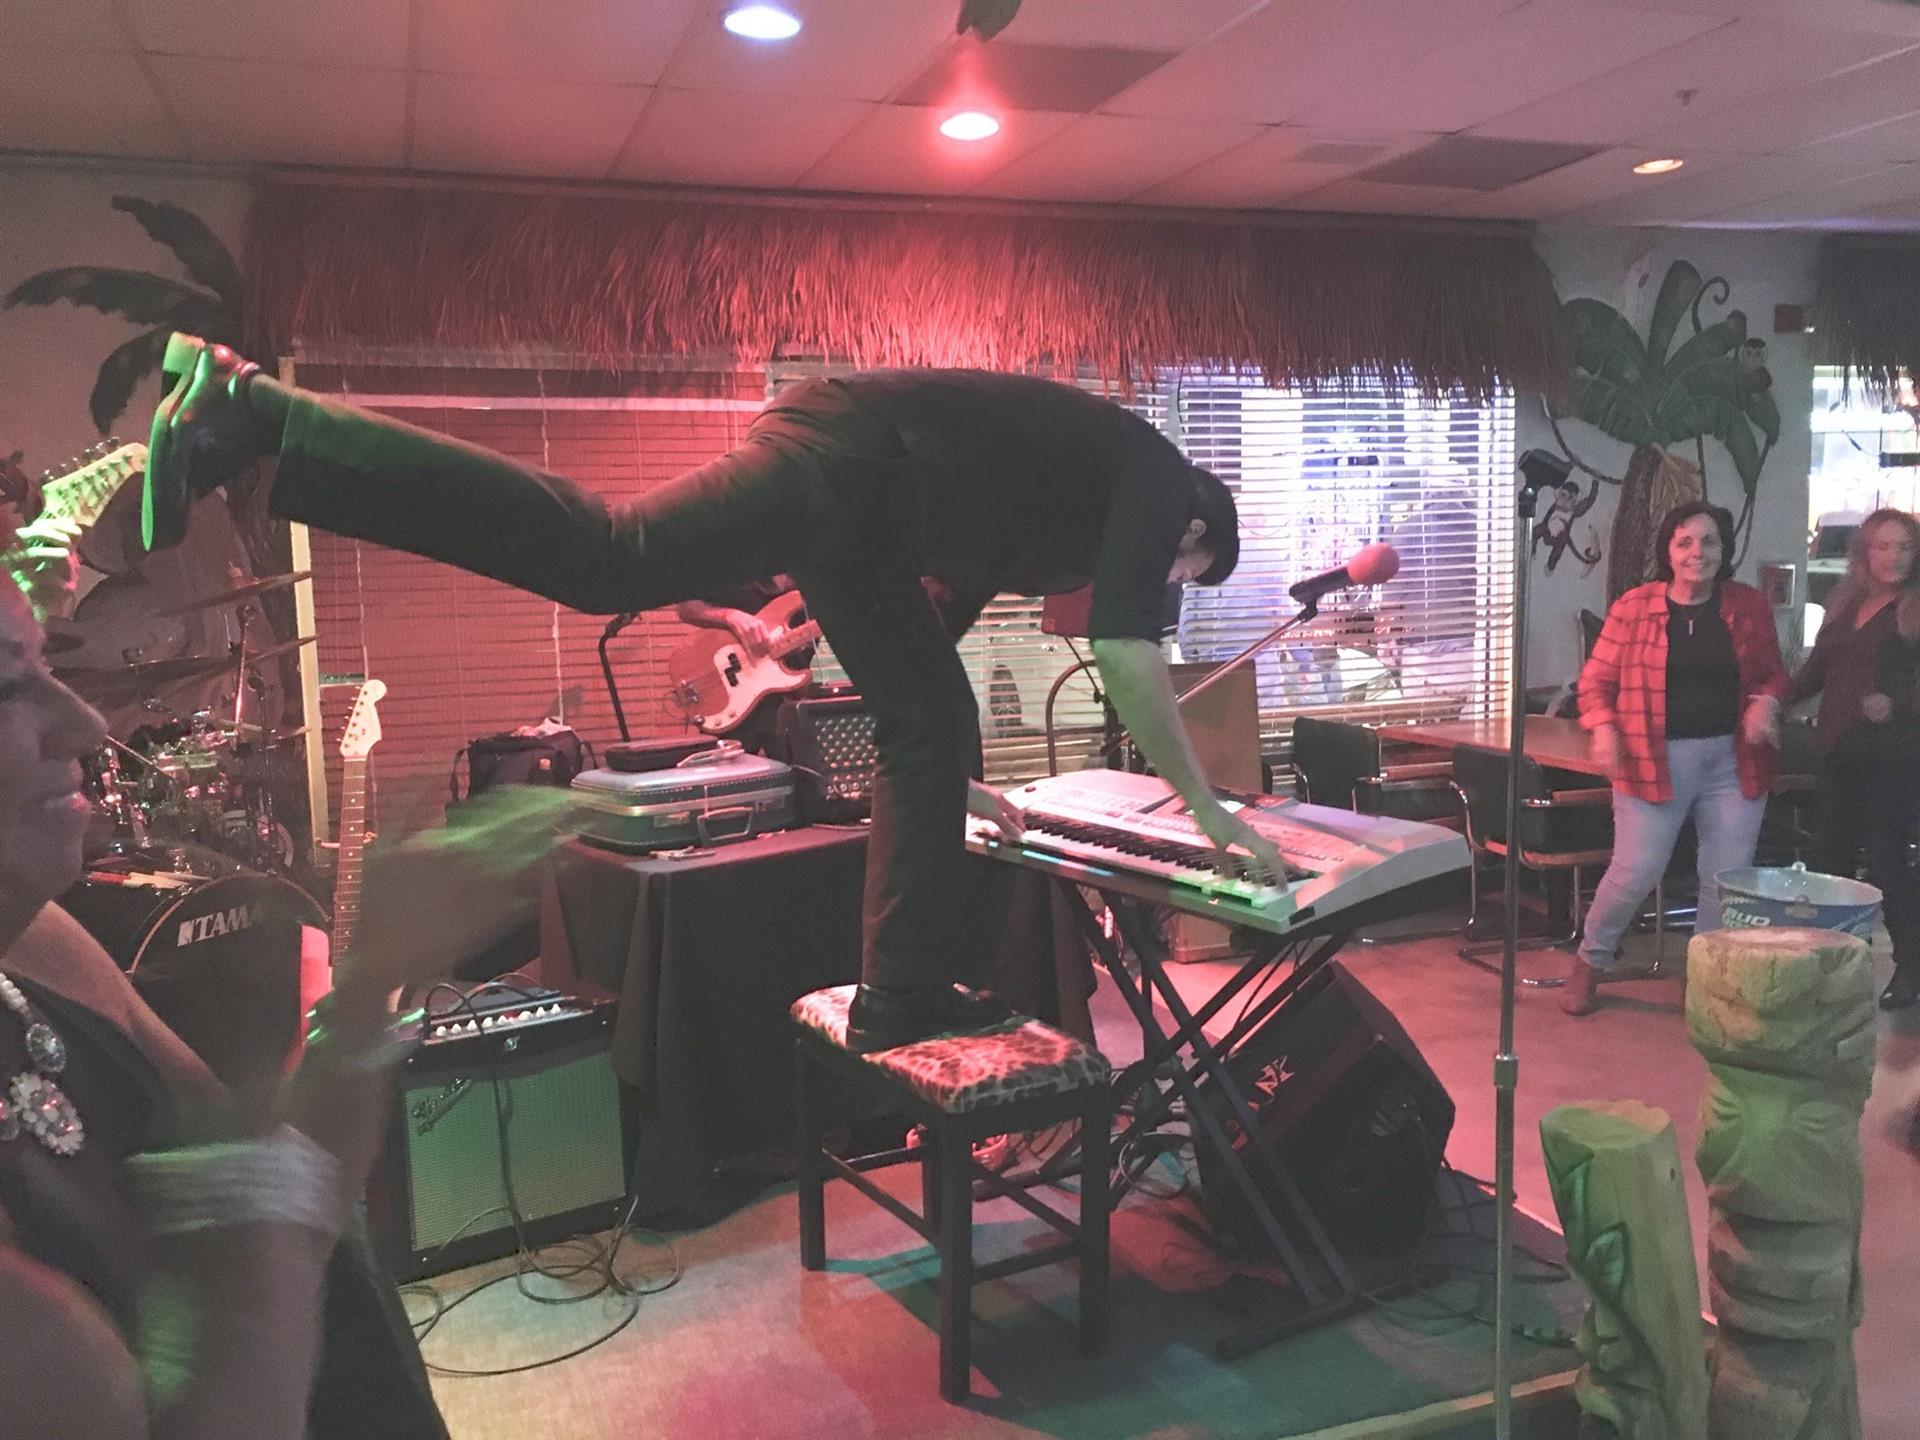 Man standing on a piano bench kicking his leg out behind him. People crowded around him